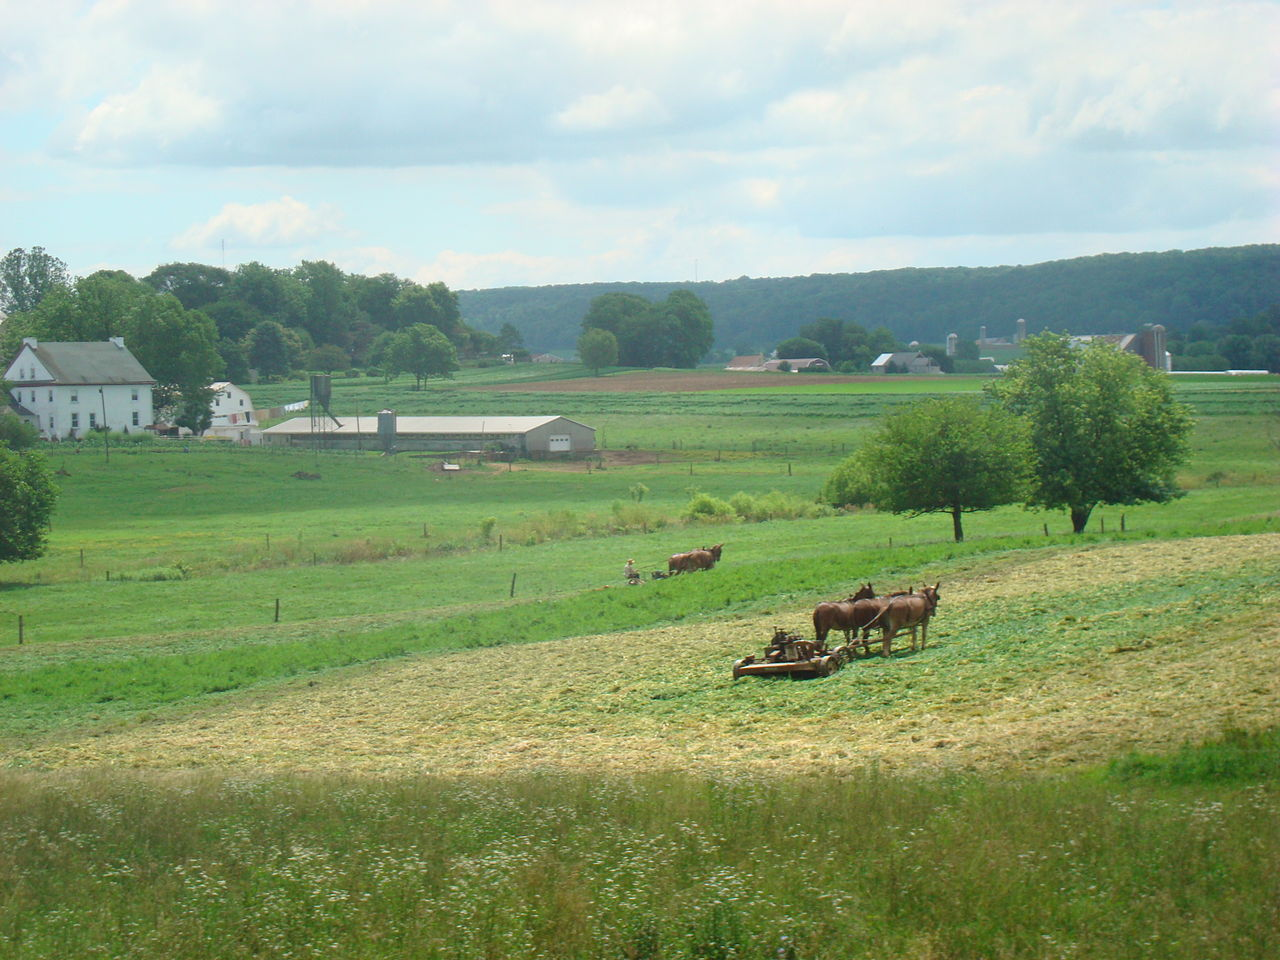 https://upload.wikimedia.org/wikipedia/commons/thumb/6/6c/Amish_Farm_Lancaster_County%2C_PA_6.jpg/1280px-Amish_Farm_Lancaster_County%2C_PA_6.jpg